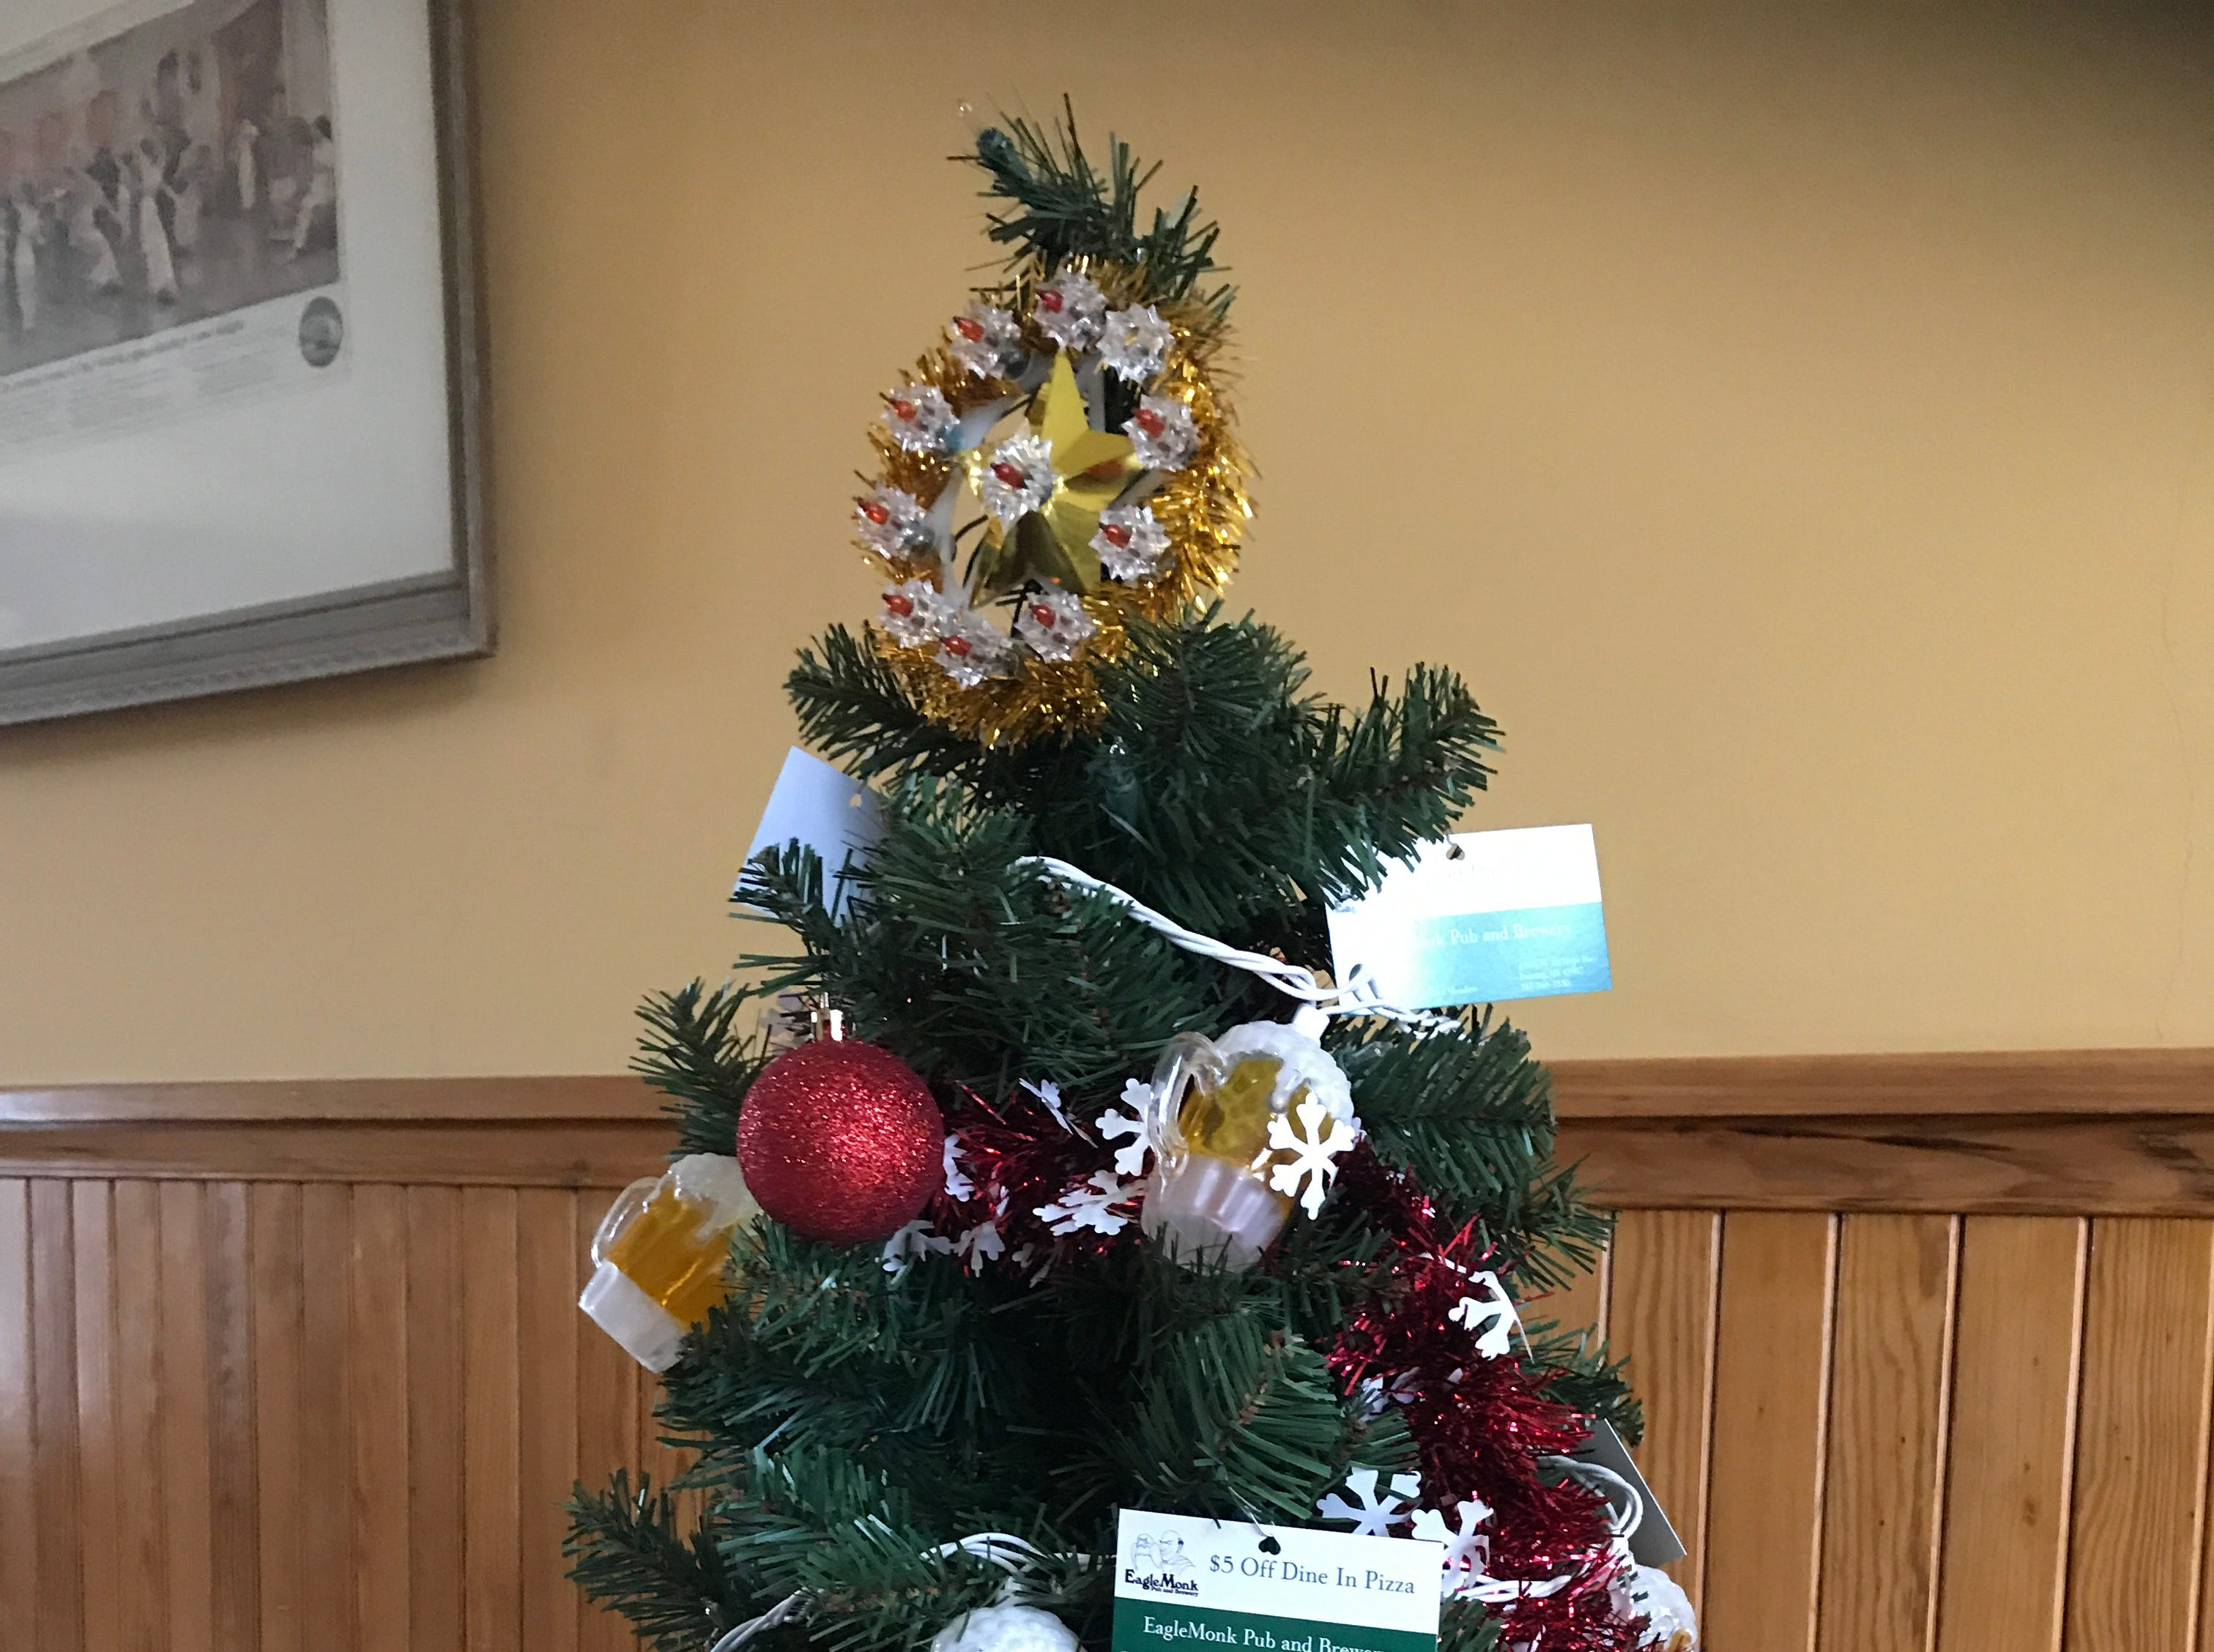 A tree is decorated with mugs of beer and coupons for Eagle Monk Pub and Brewery.